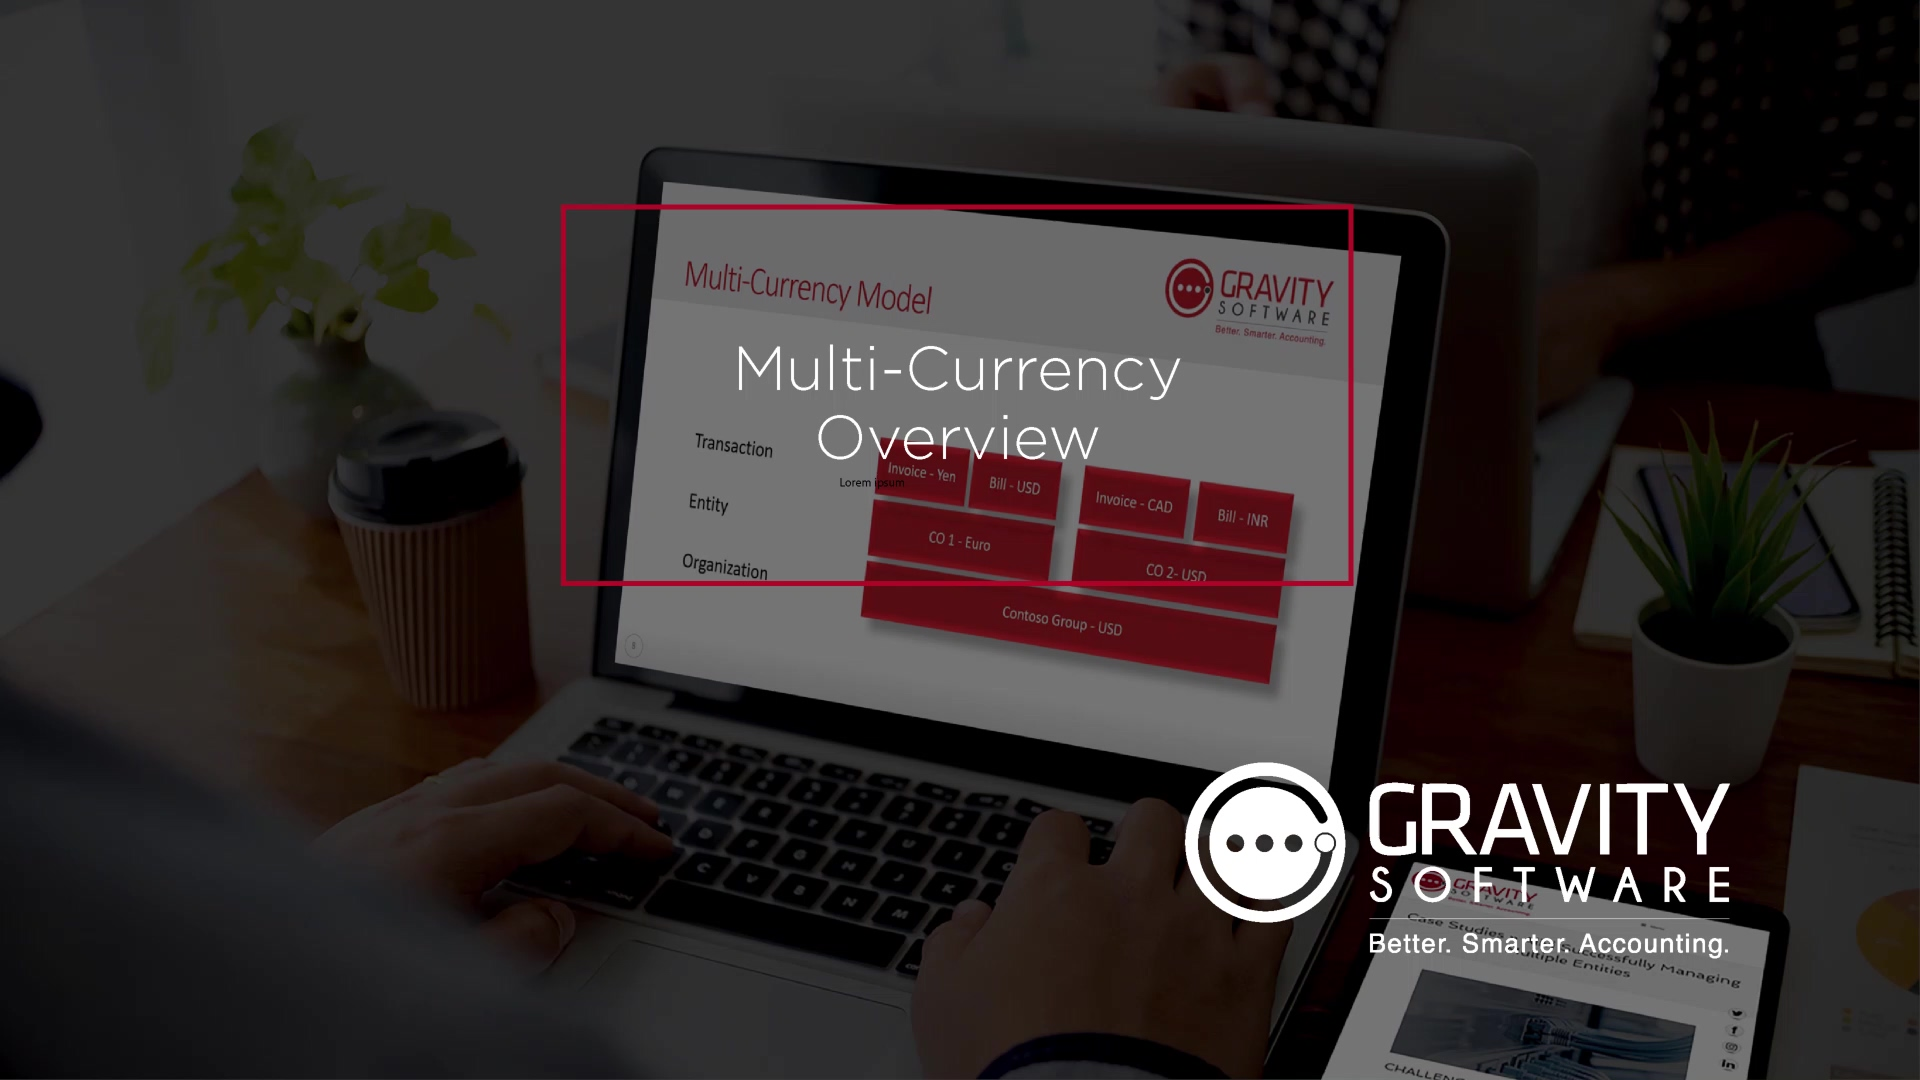 Gravity Software Multi-Currency Overview